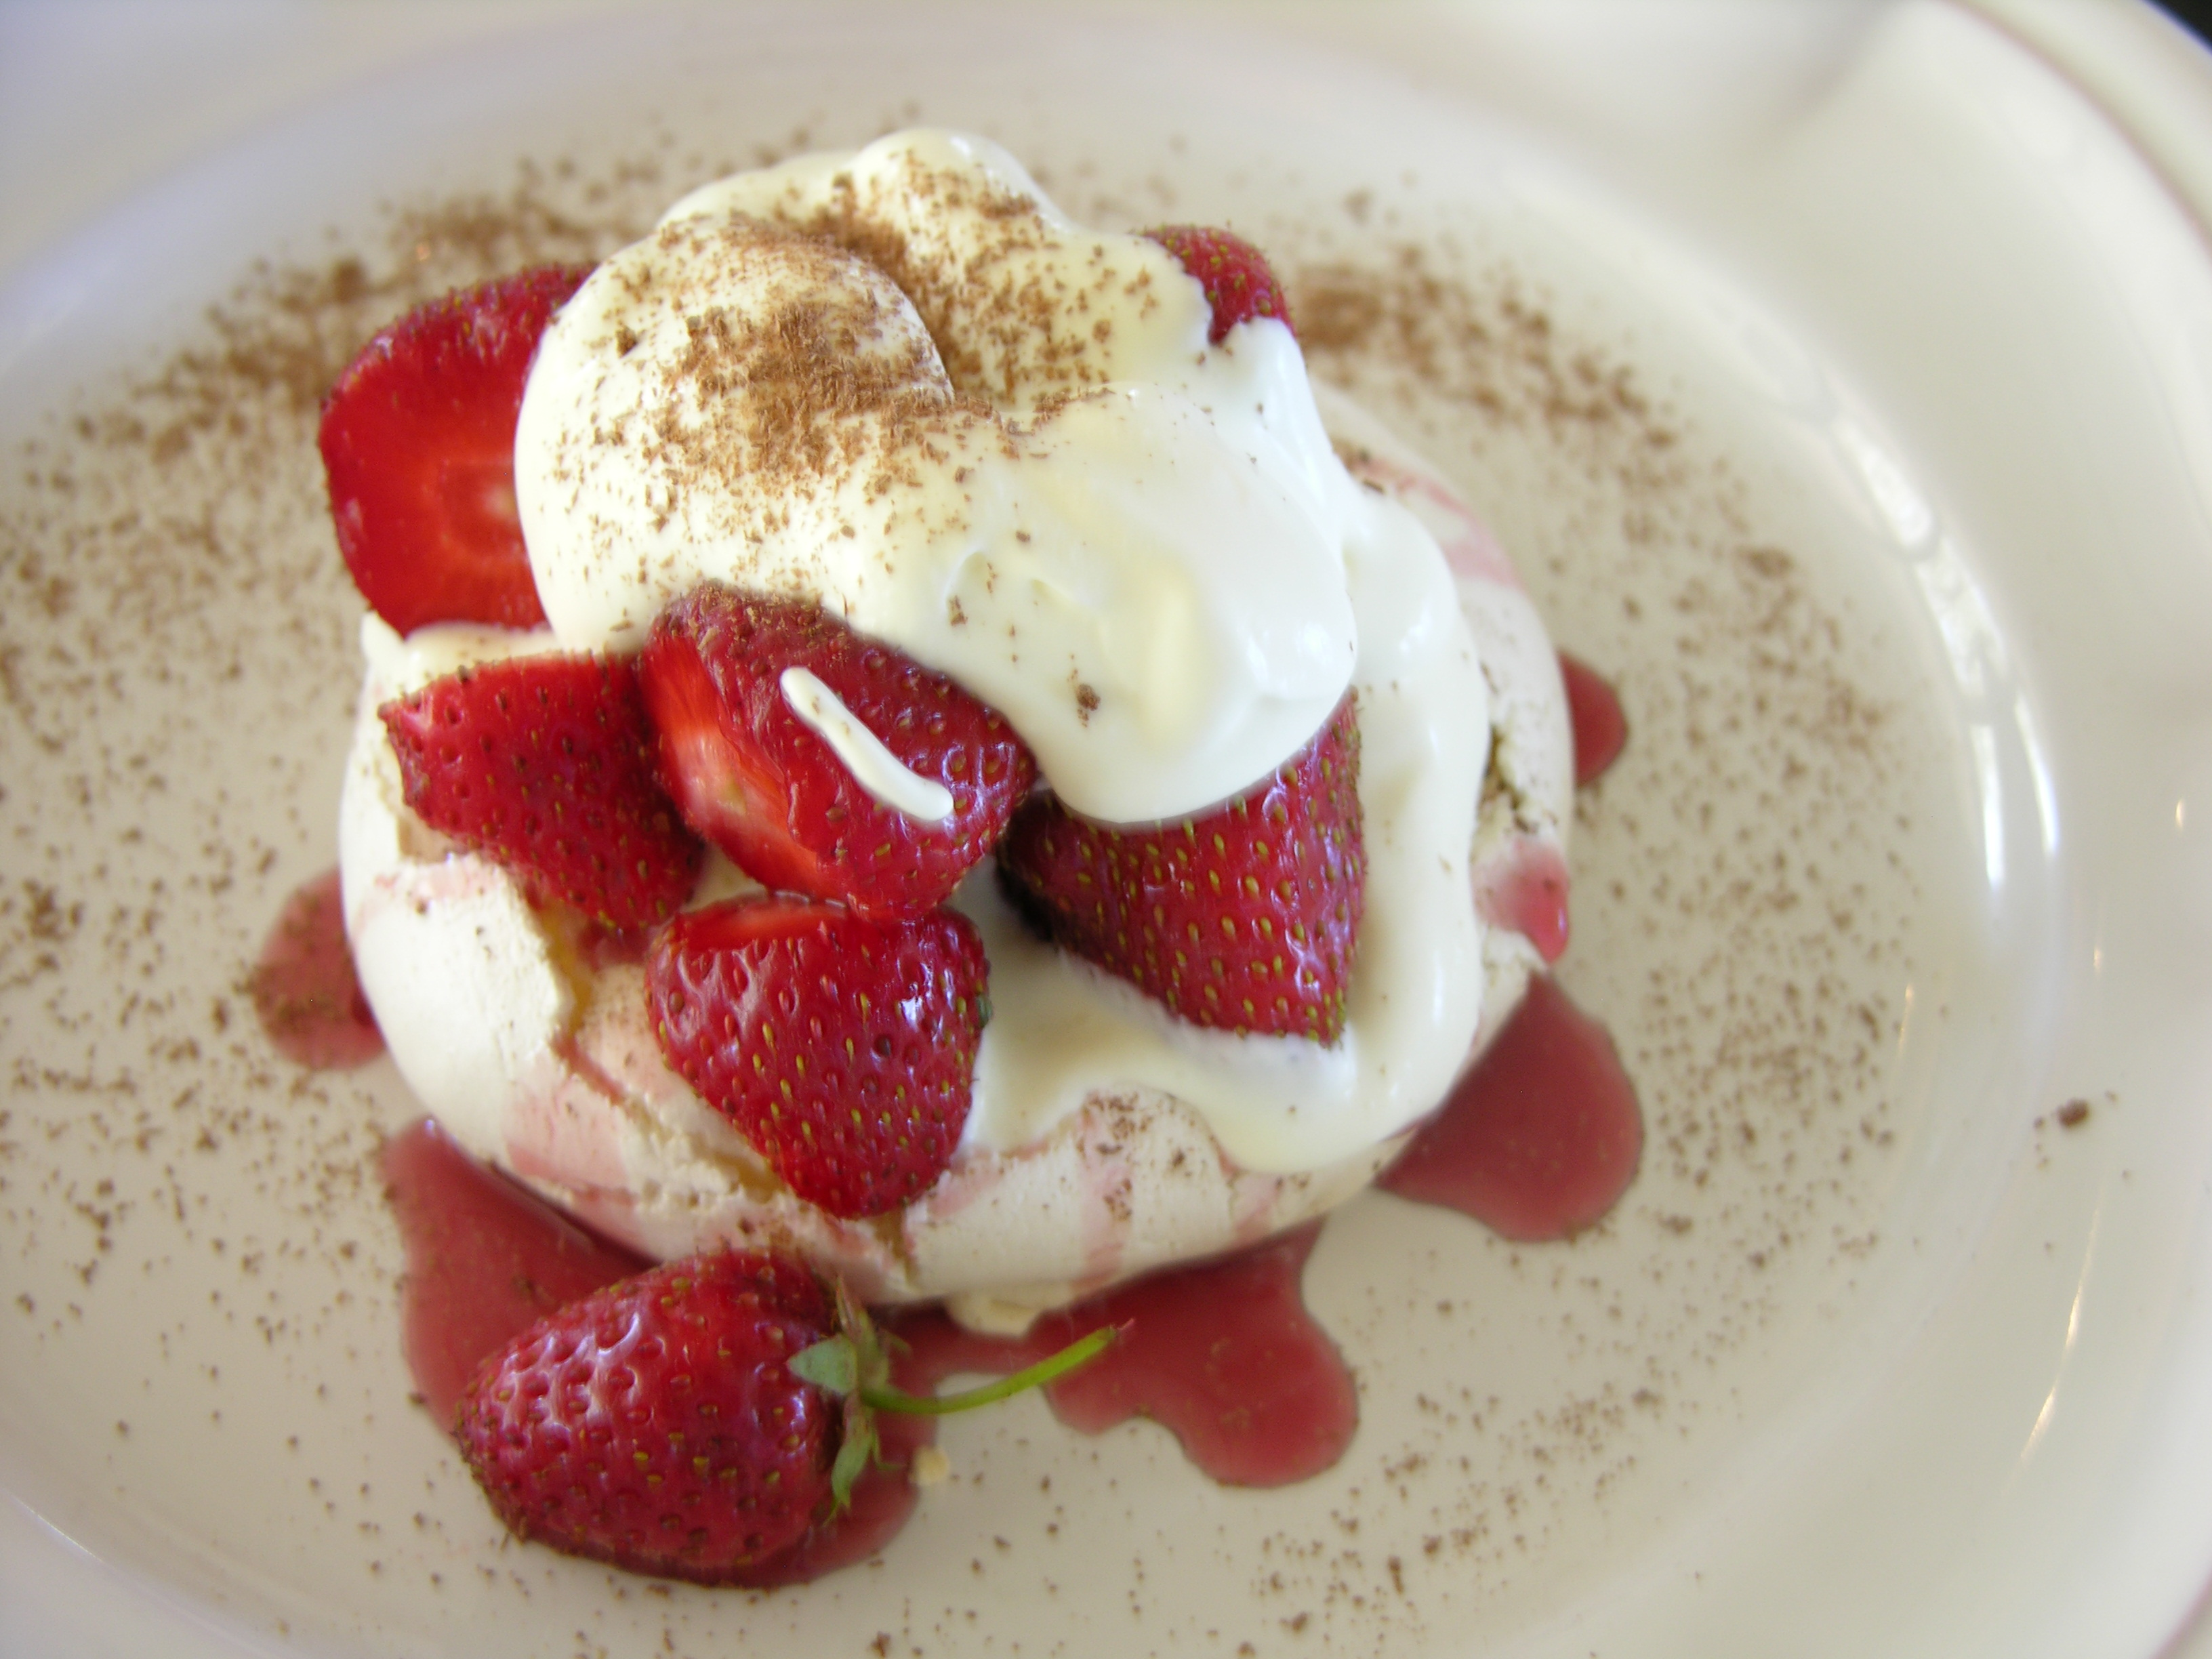 CHOCOLATE DUSTED MERINGUES W/FRESH STRAWBERRIES AND AMANDA'S PRESERVED STRAWBERRIES W/CHILIES